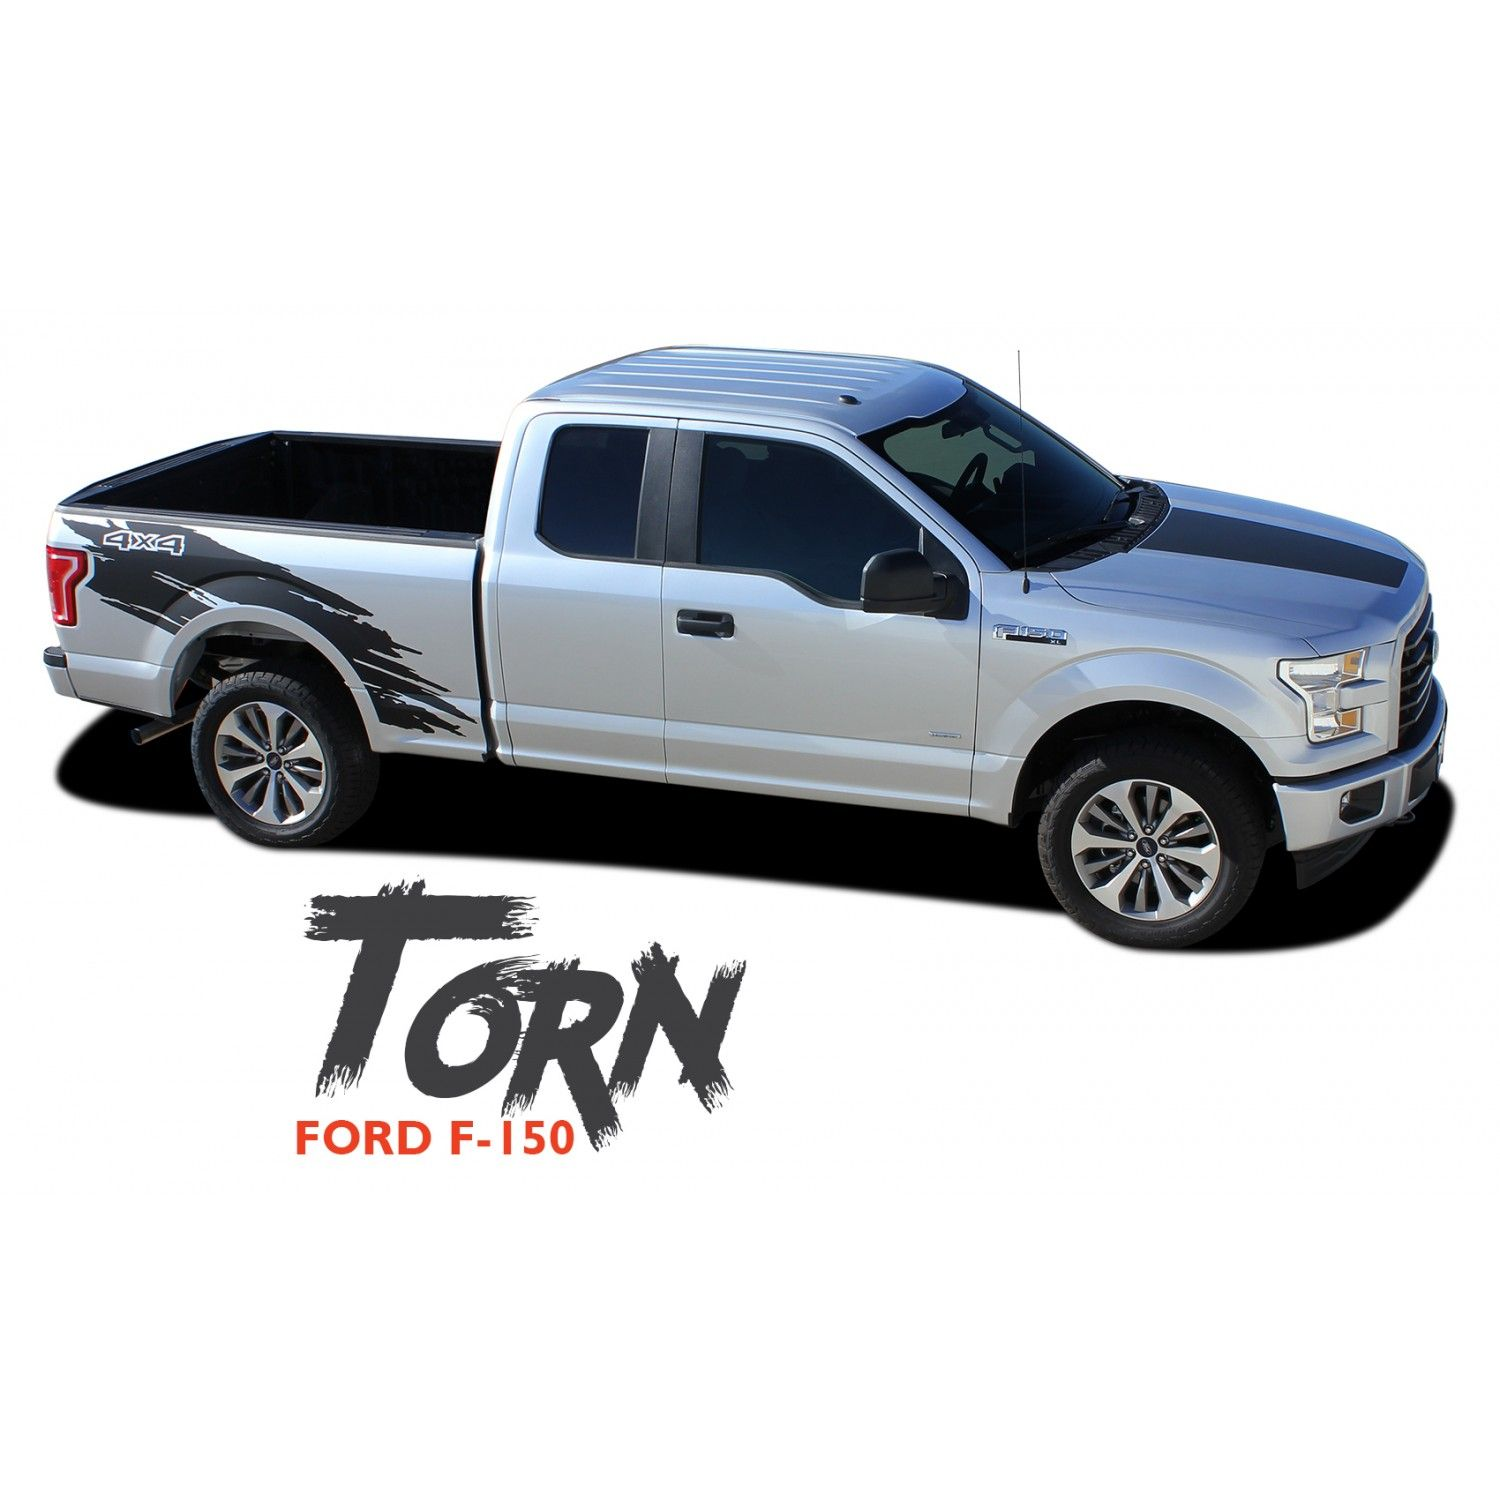 Ford F TORN Mudslinger Side Truck Bed X Rally Stripes Vinyl - Truck bed decals customford fvinyl graphics for bed fender